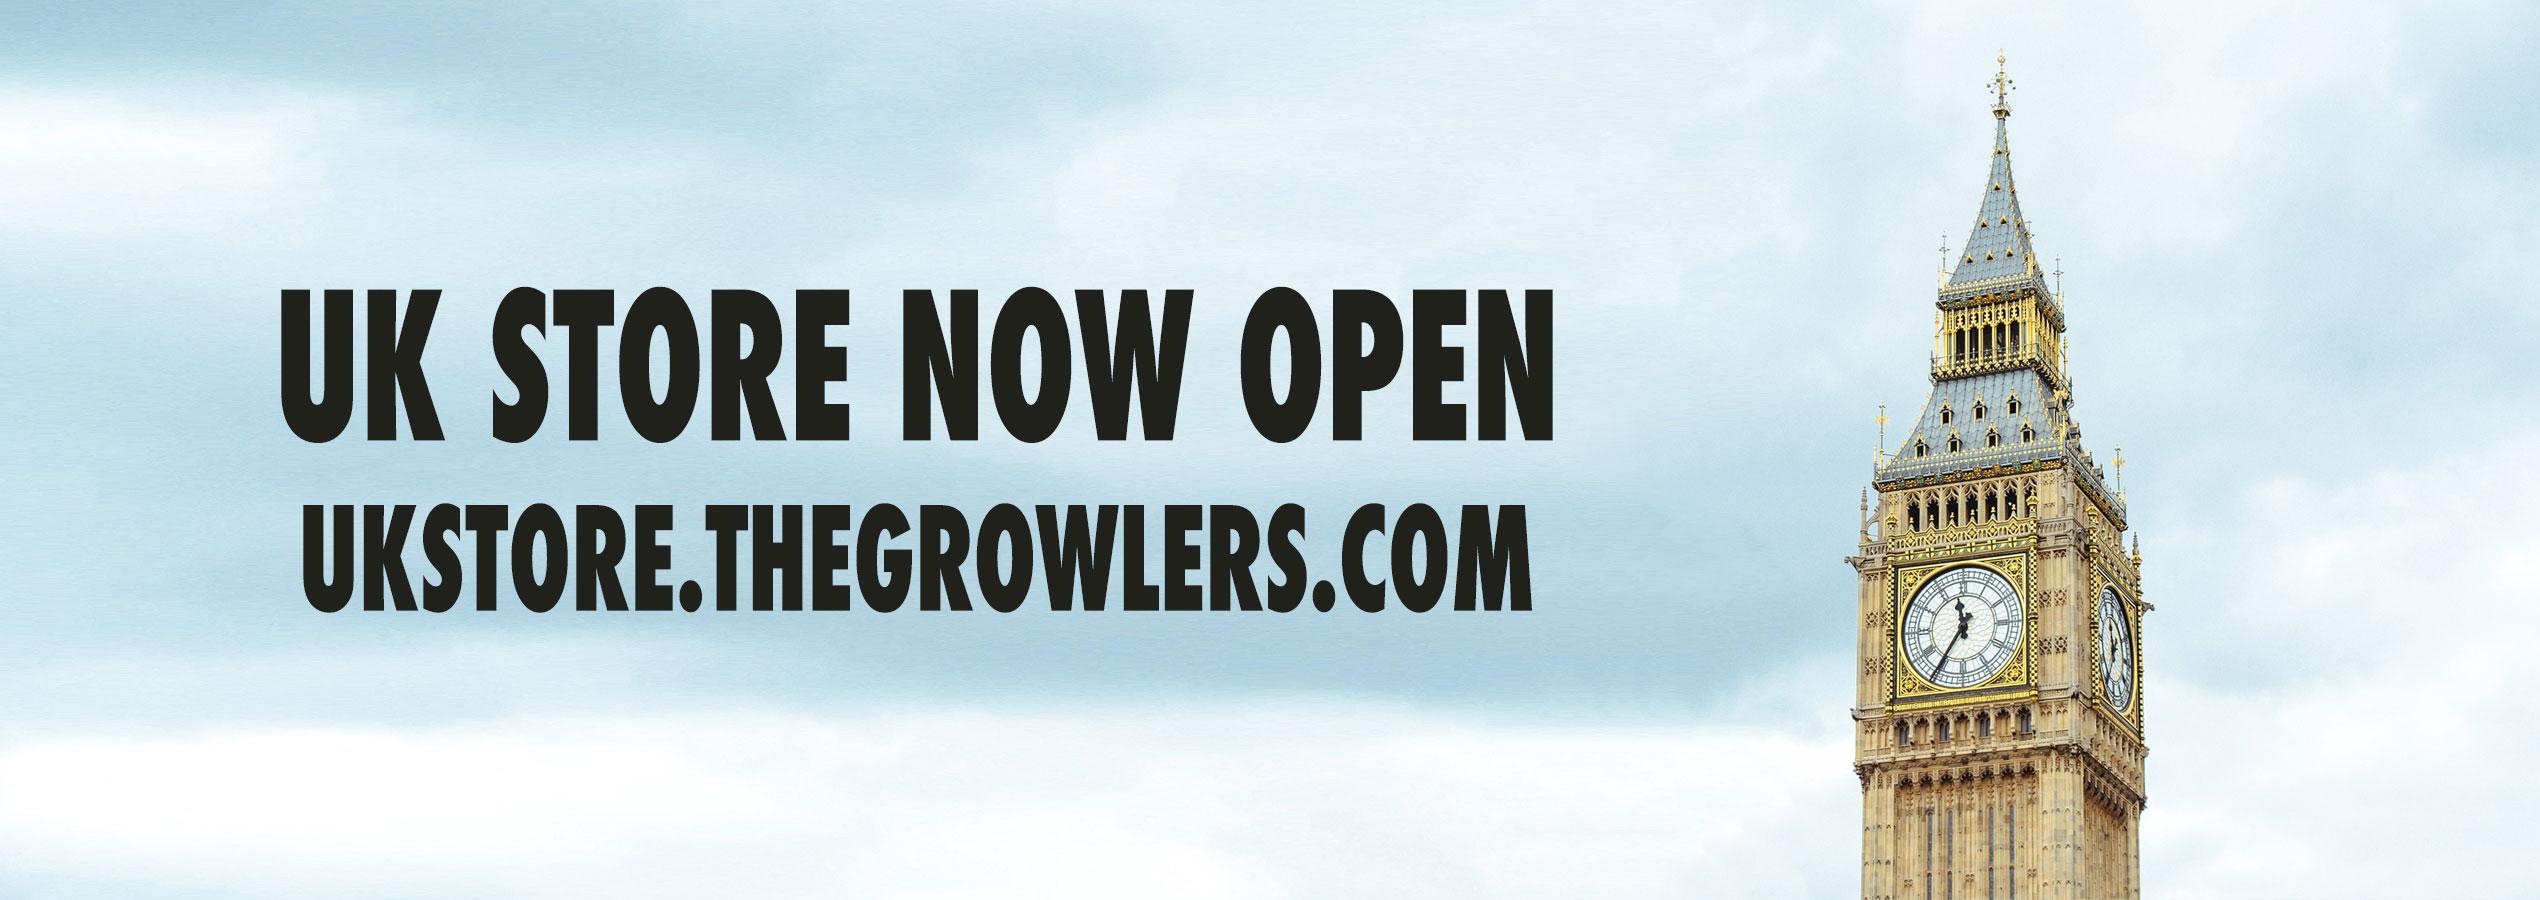 The Growlers UK Store Now Open Big Ben